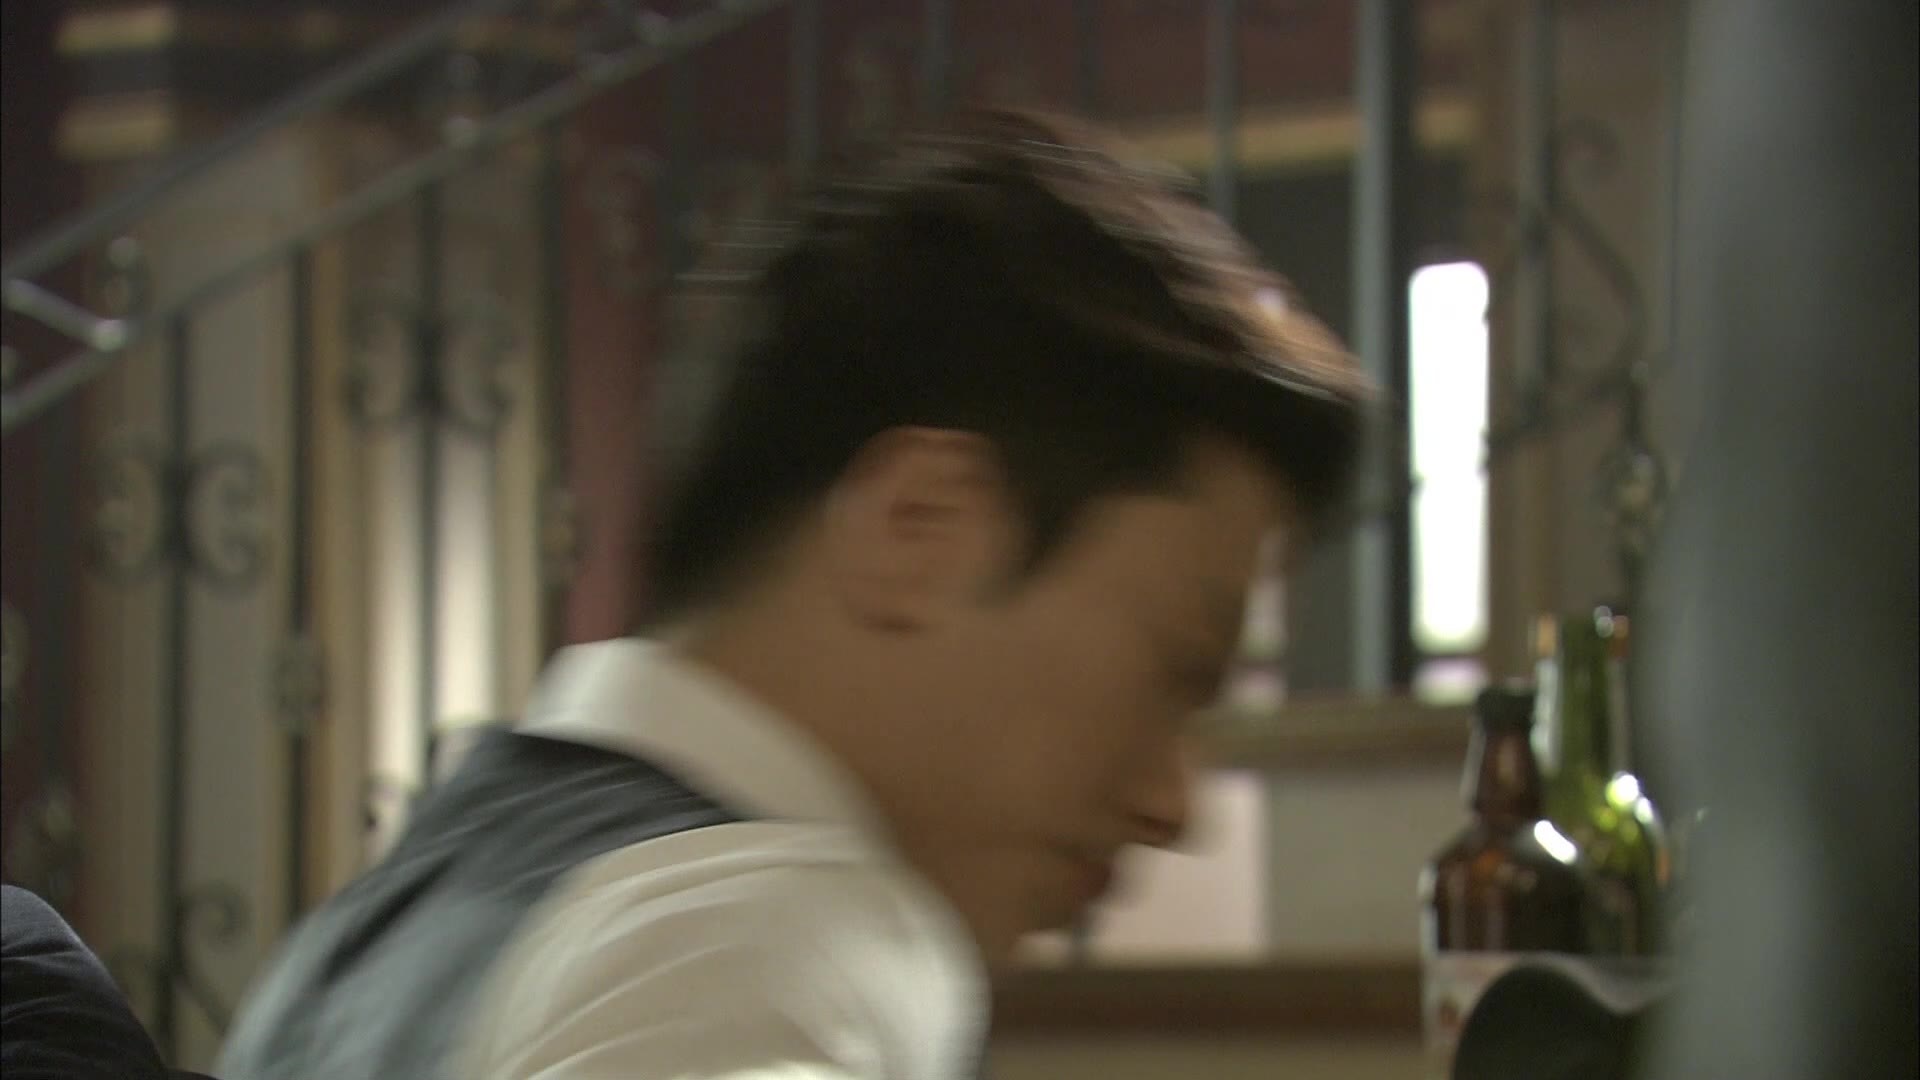 Inspiring Generation Episode 19